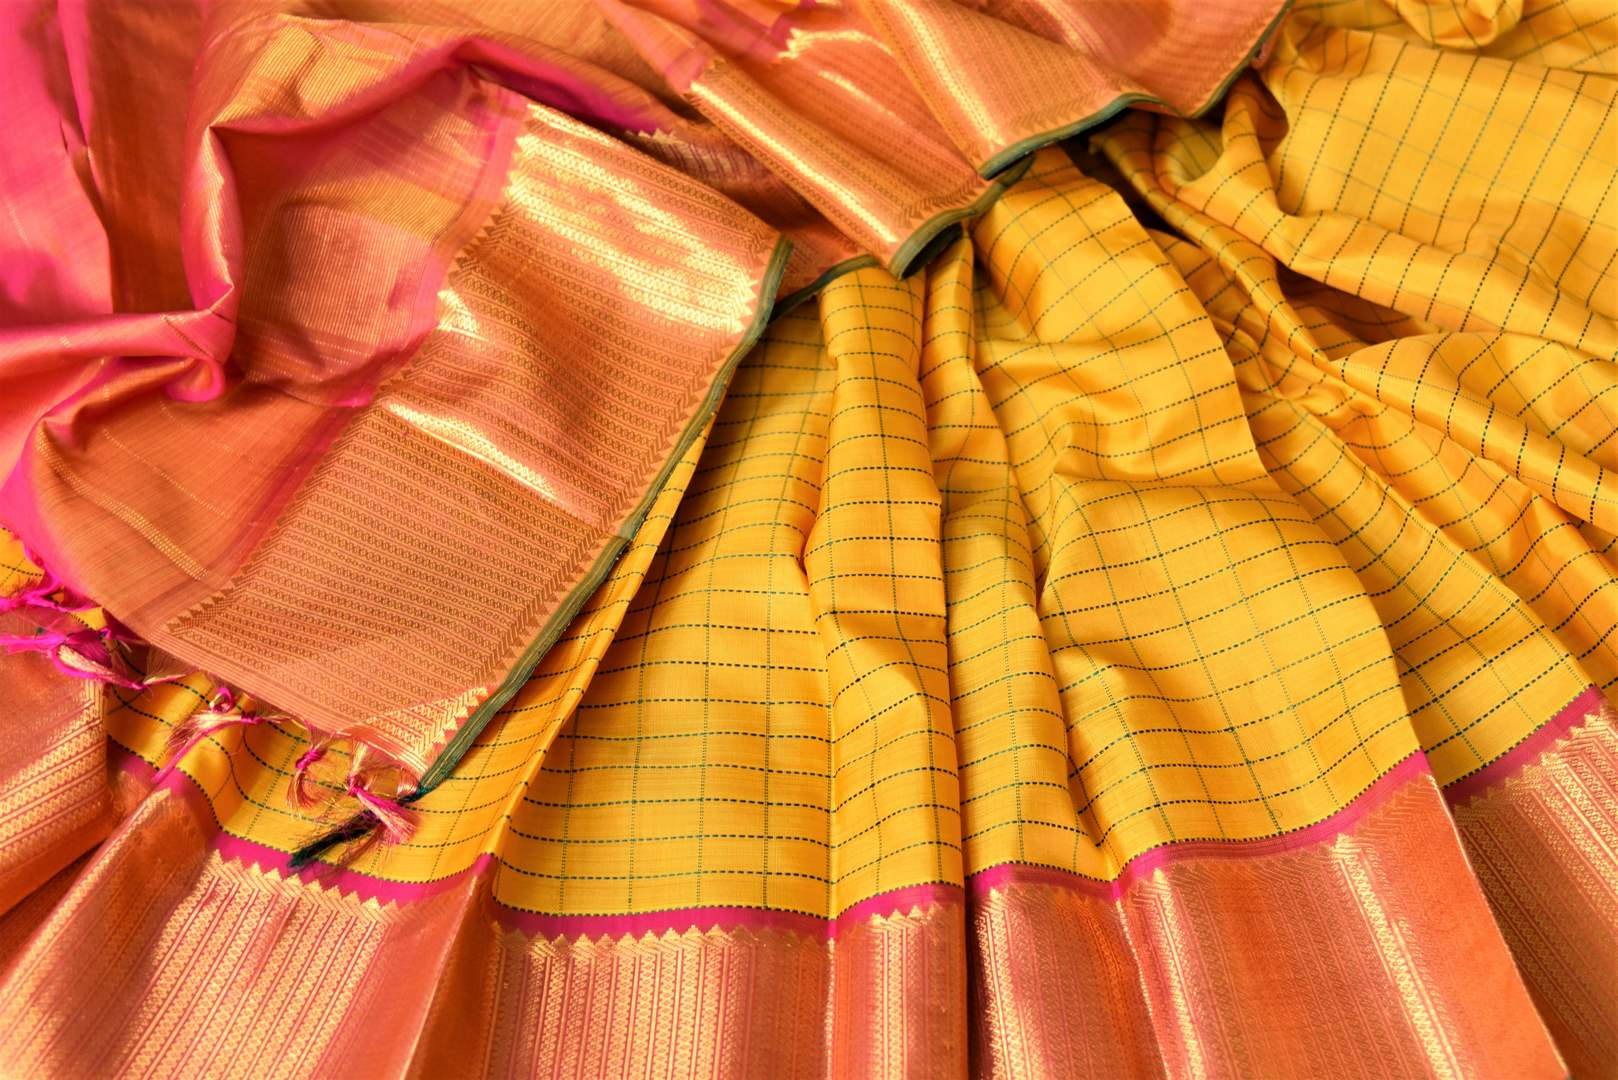 Beautiful yellow check Kanjivaram saree for online shopping in USA with golden zari border. Buy exquisite Kanchipuram silk sarees from Pure Elegance Indian clothing store in USA for weddings and festive occasions.-details